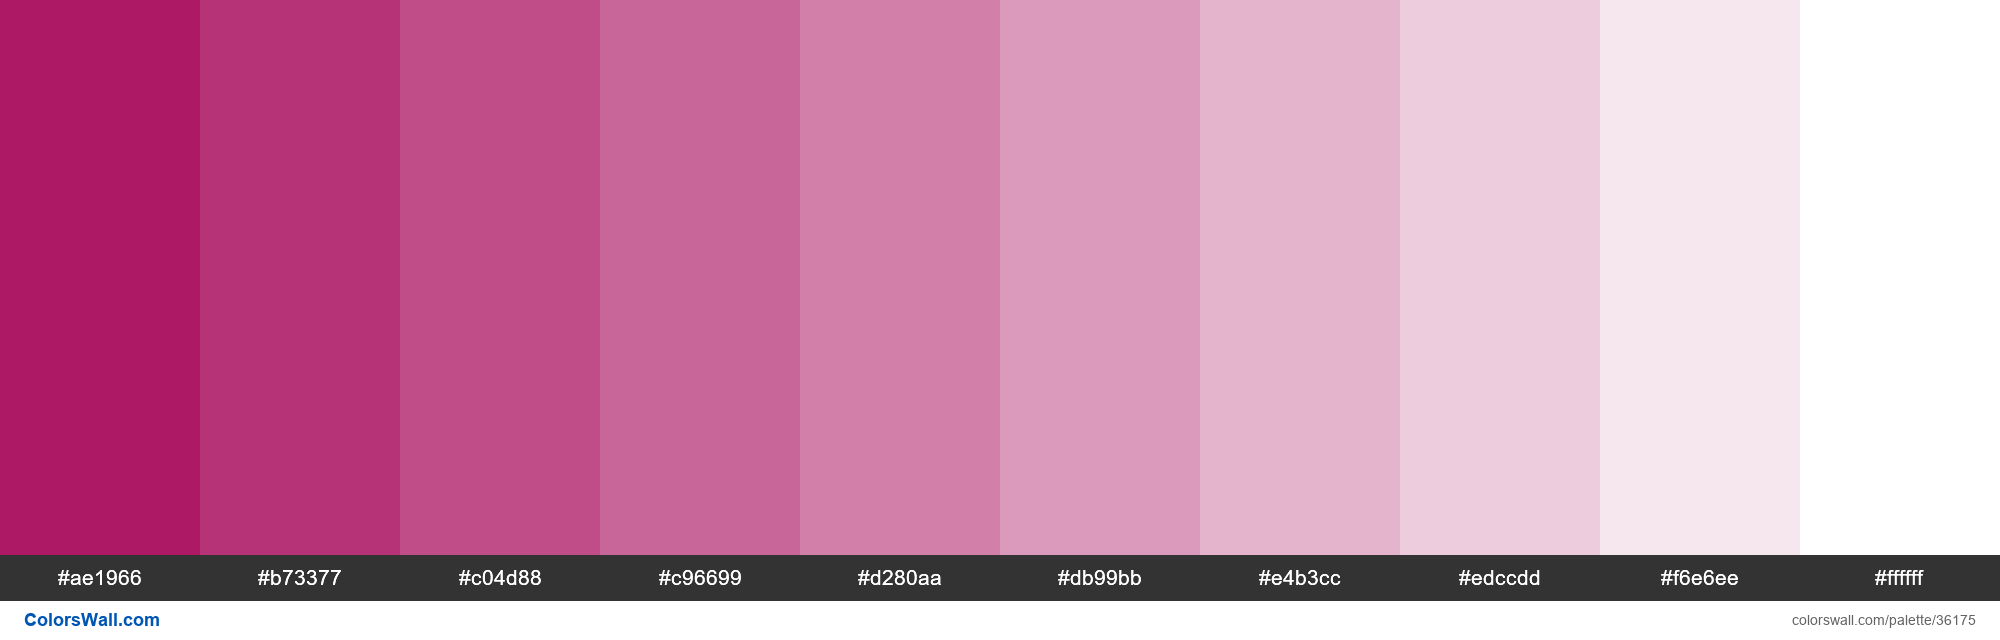 Tints XKCD Color violet red #a50055 hex - #36175